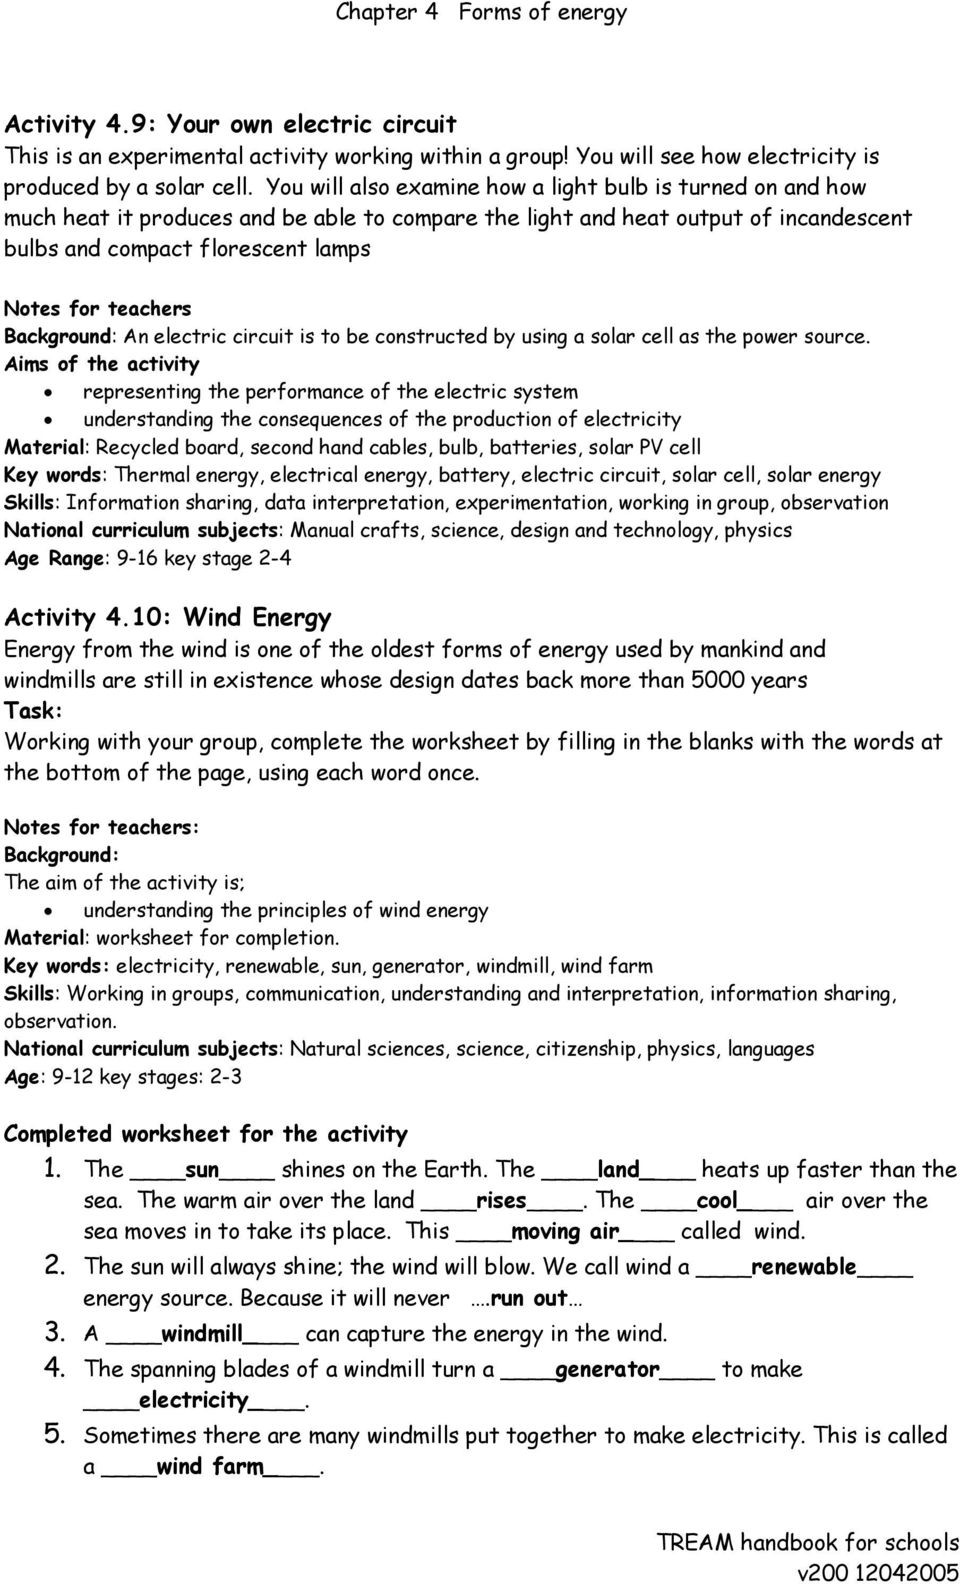 Electrical Power Worksheet Answers Electrical Power and Energy Worksheet Energy Etfs